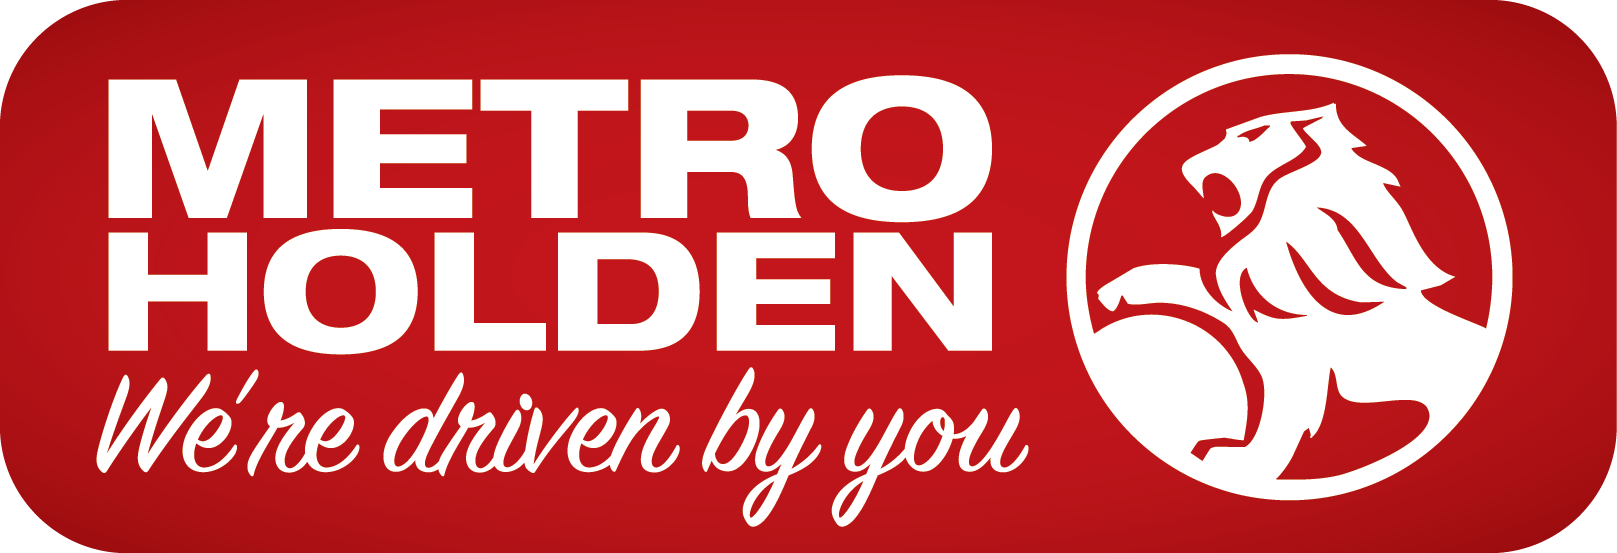 Metro Holden - We're driven by you